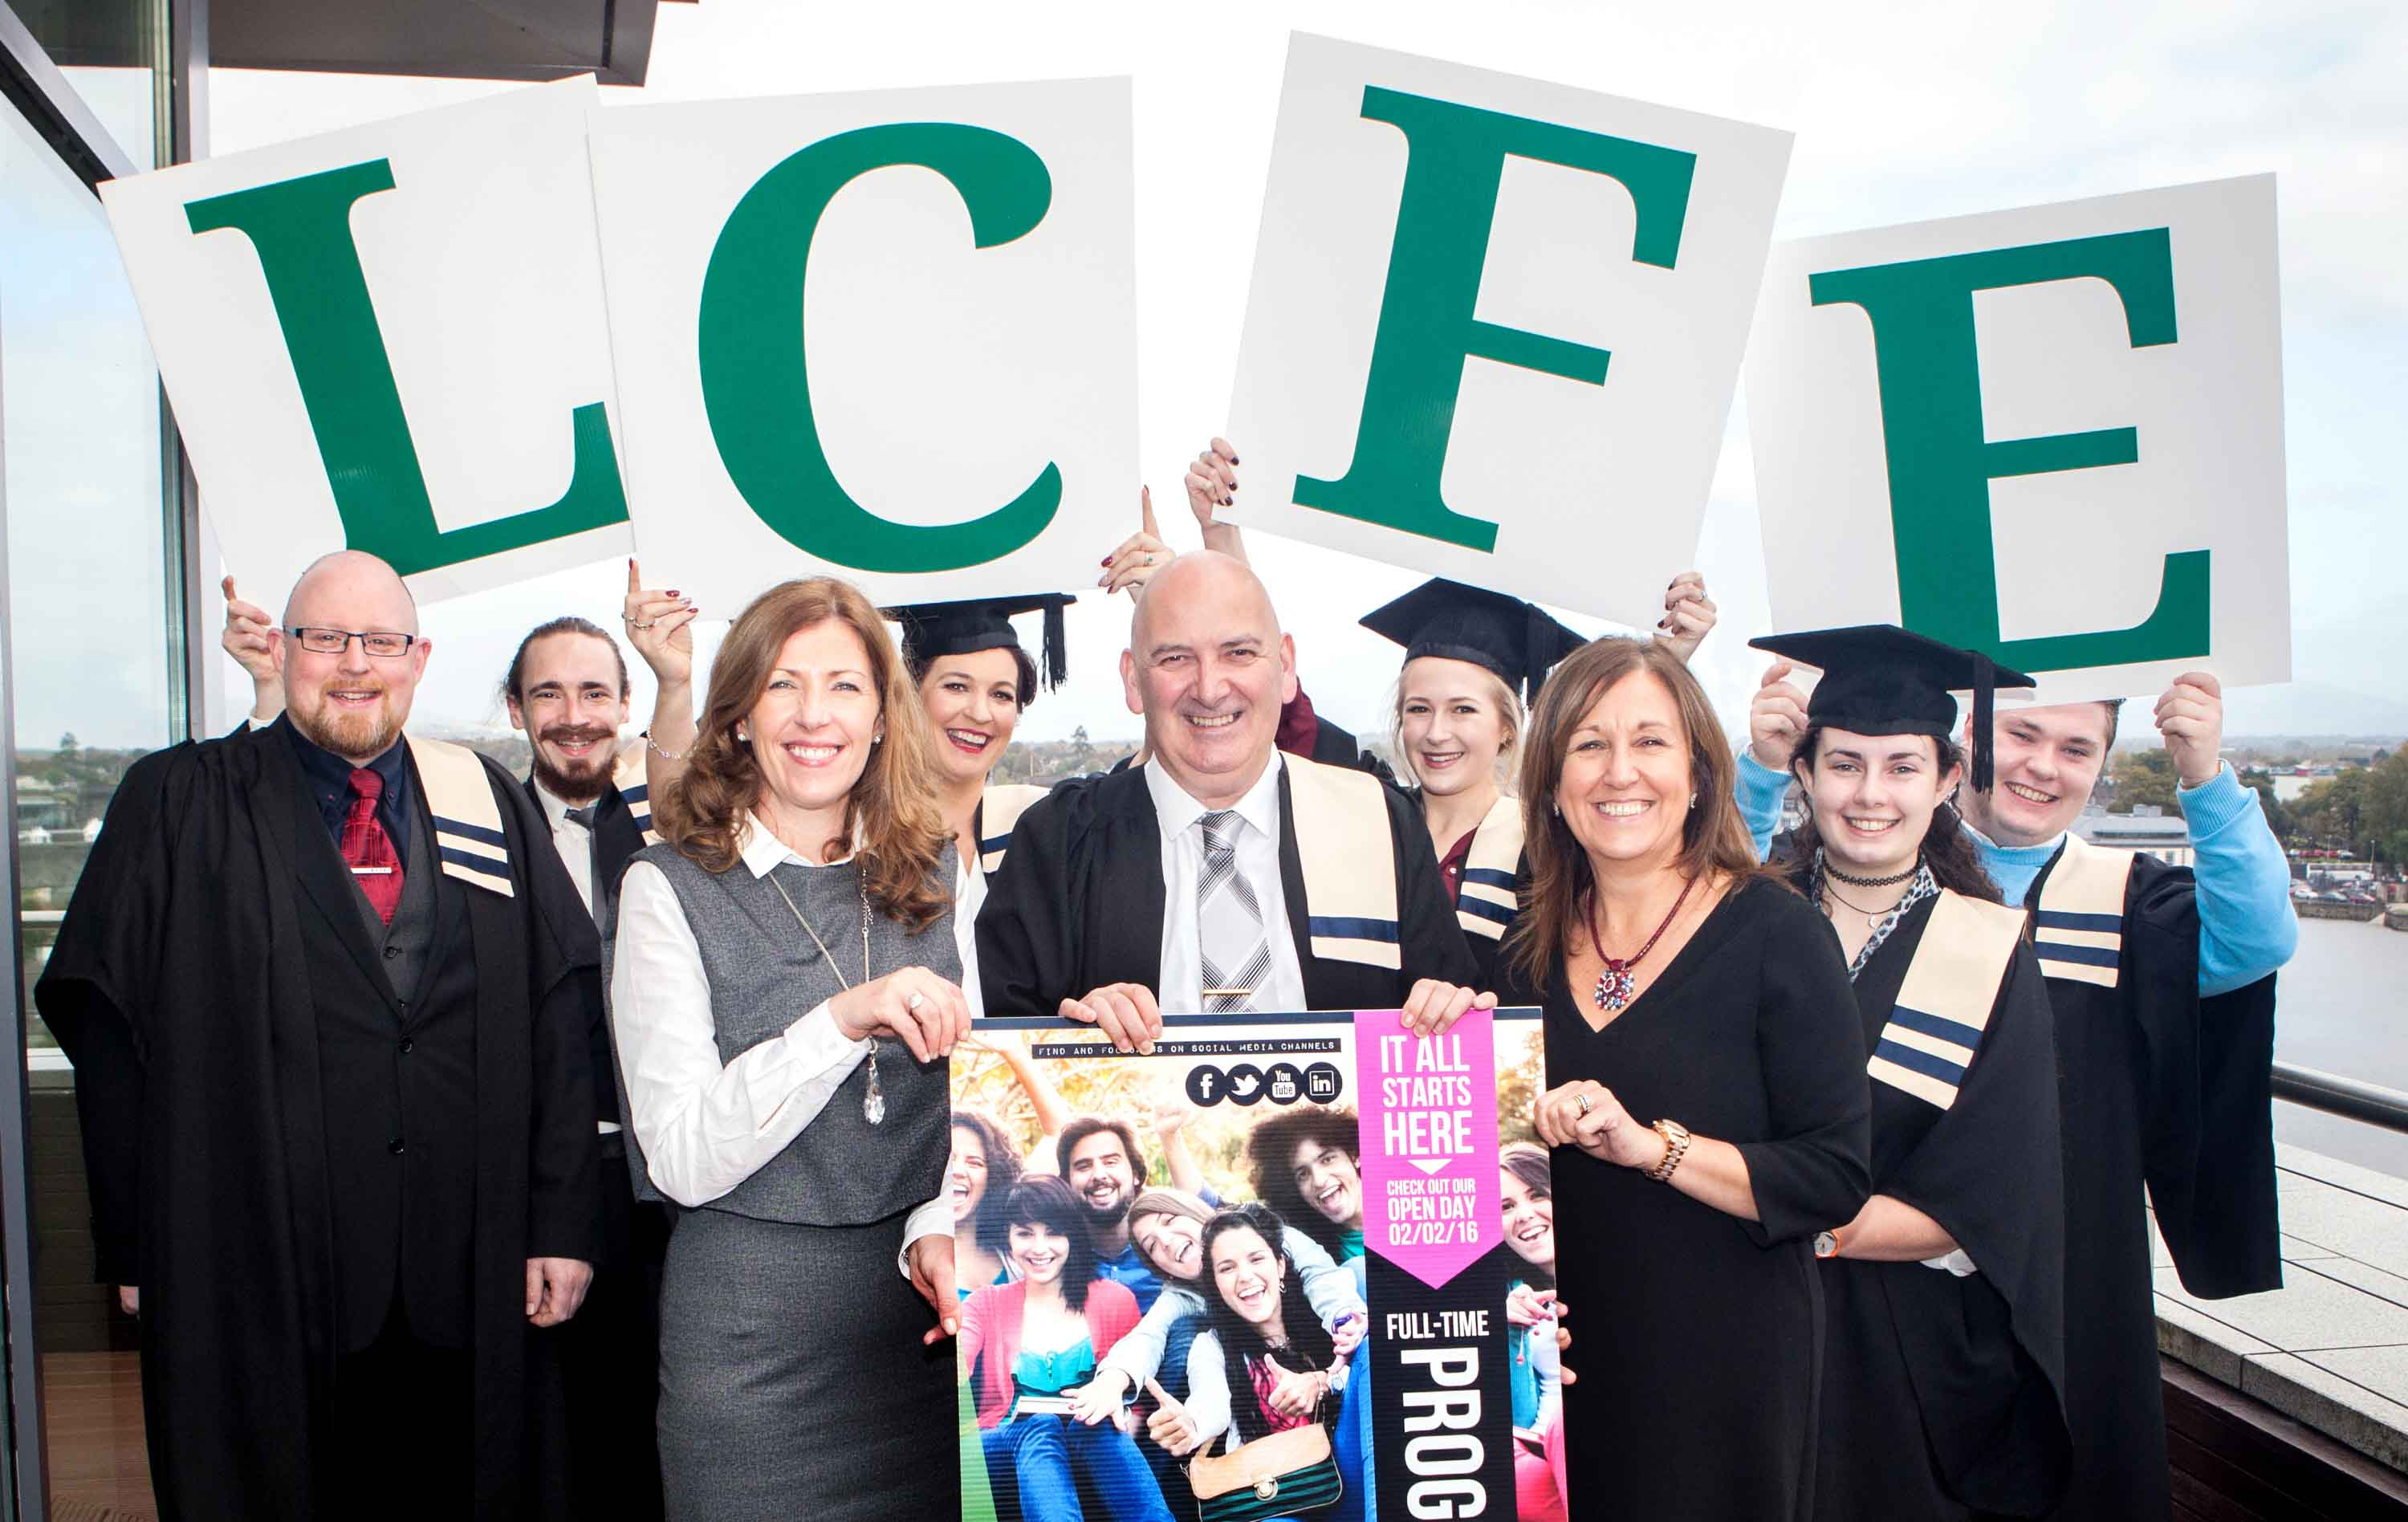 LCFE launches new prospectus for 2016/2017